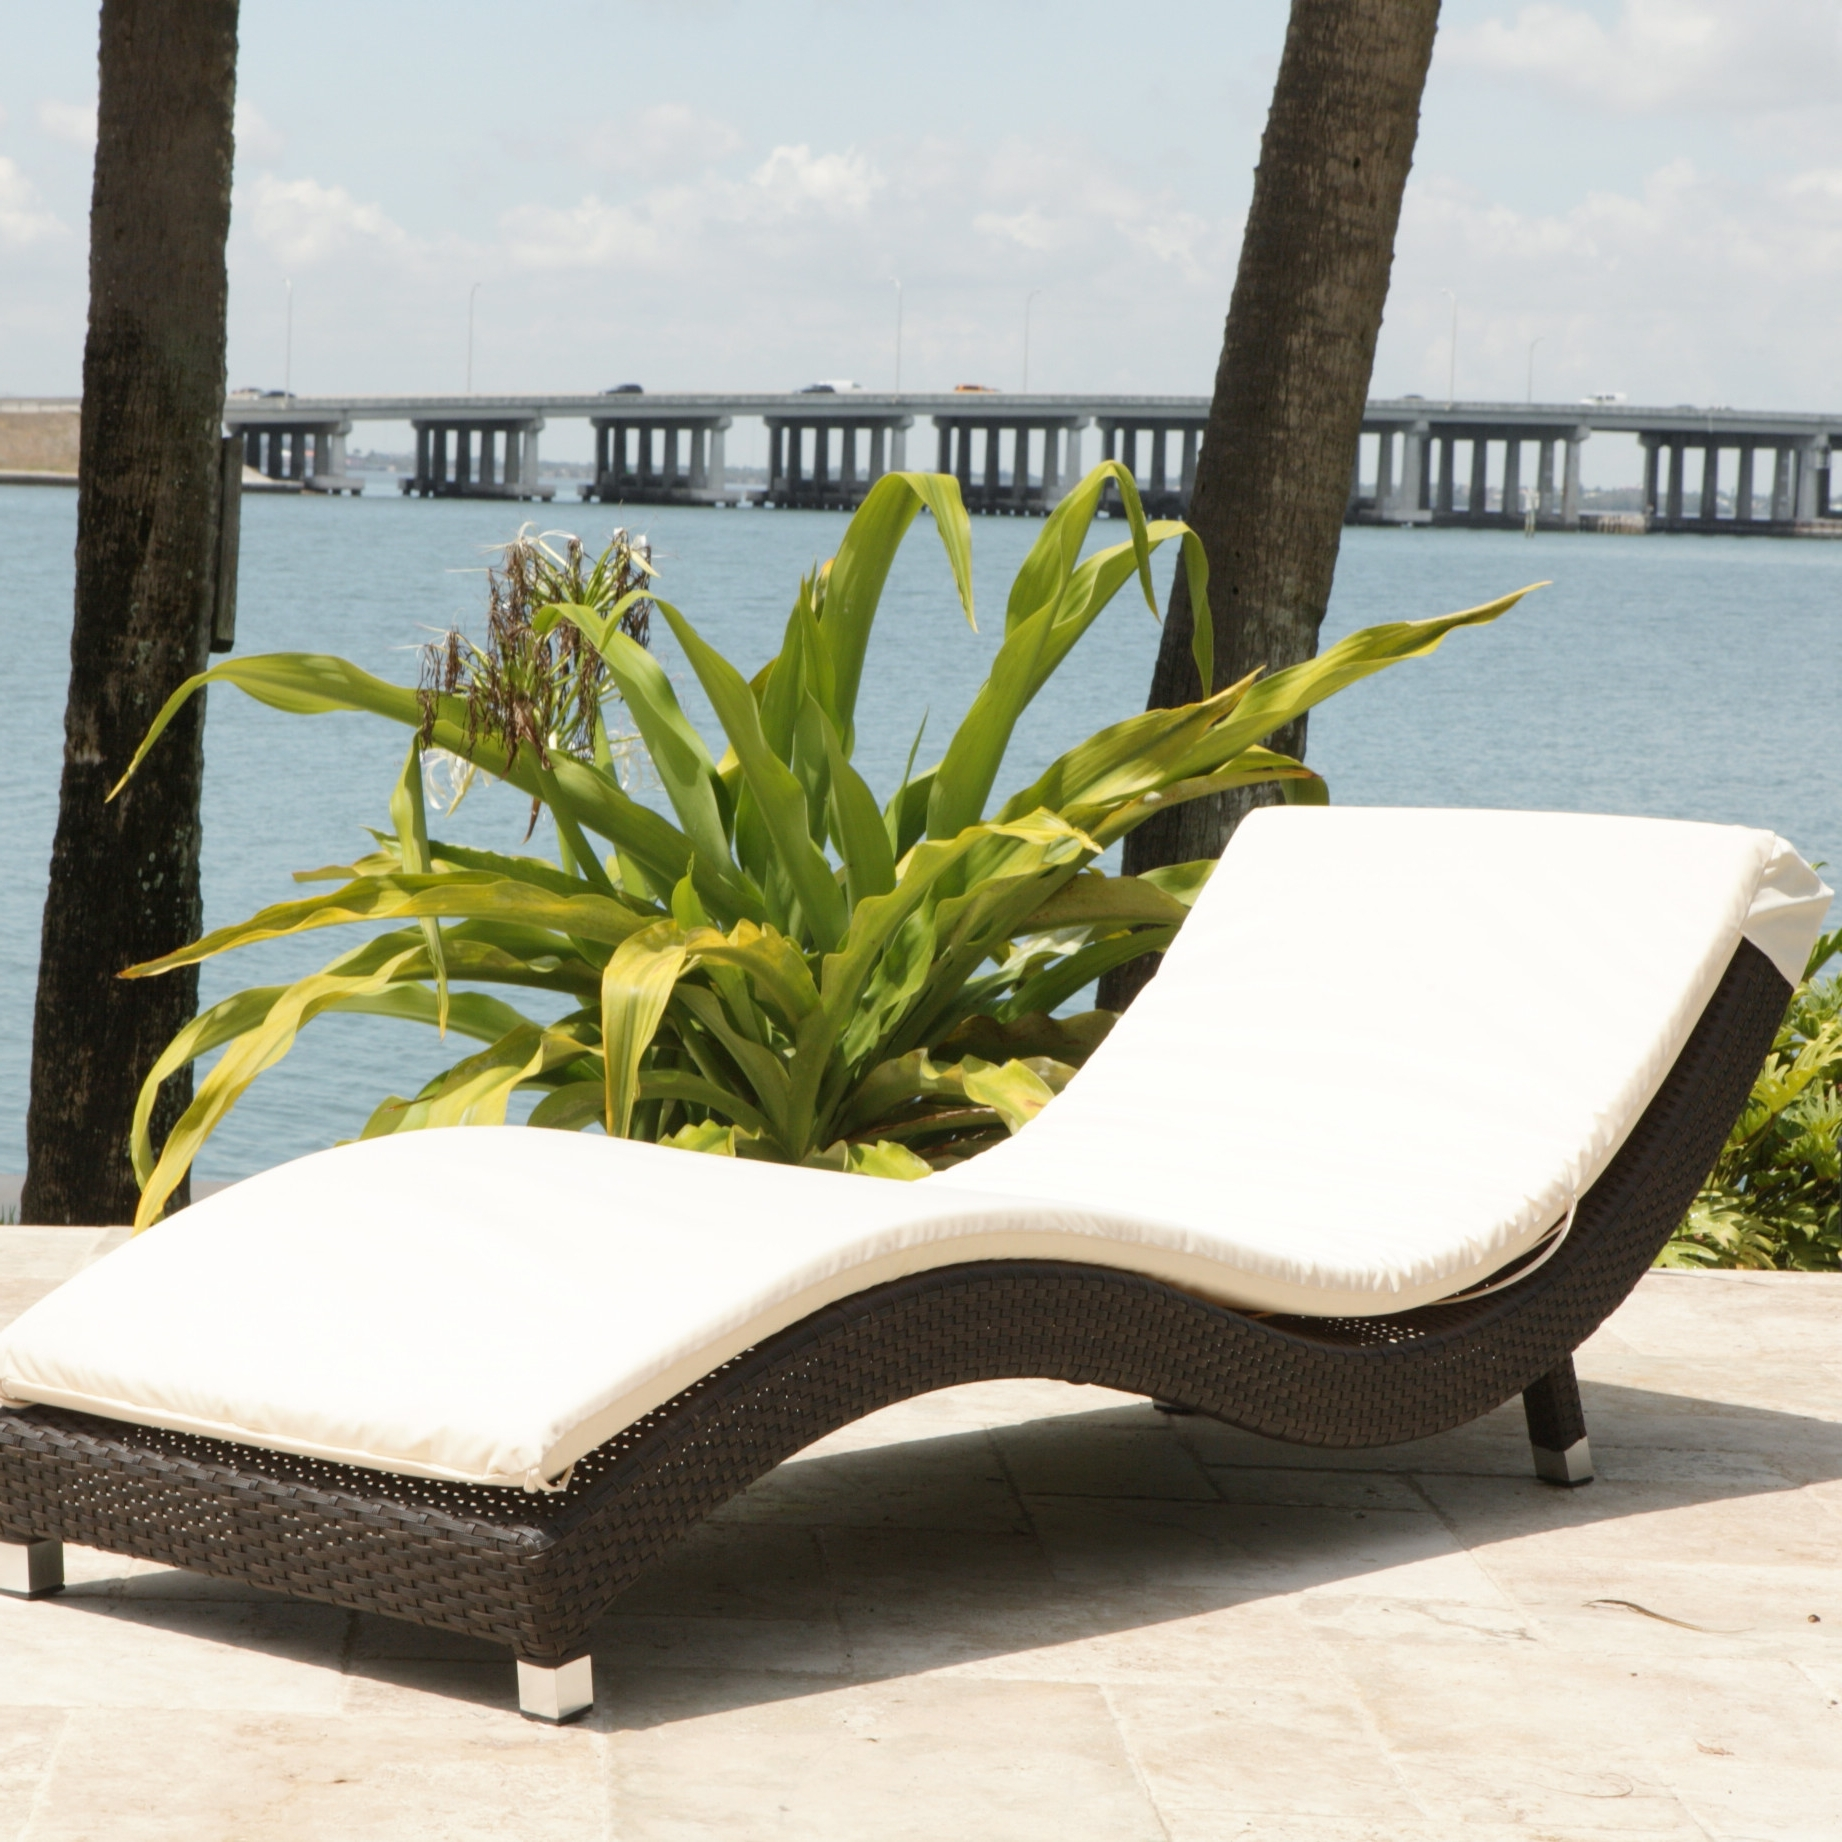 Unique Pool Chaise Lounge Chairs — Bed And Shower : Decorating Throughout Famous Contemporary Outdoor Chaise Lounge Chairs (Gallery 4 of 15)